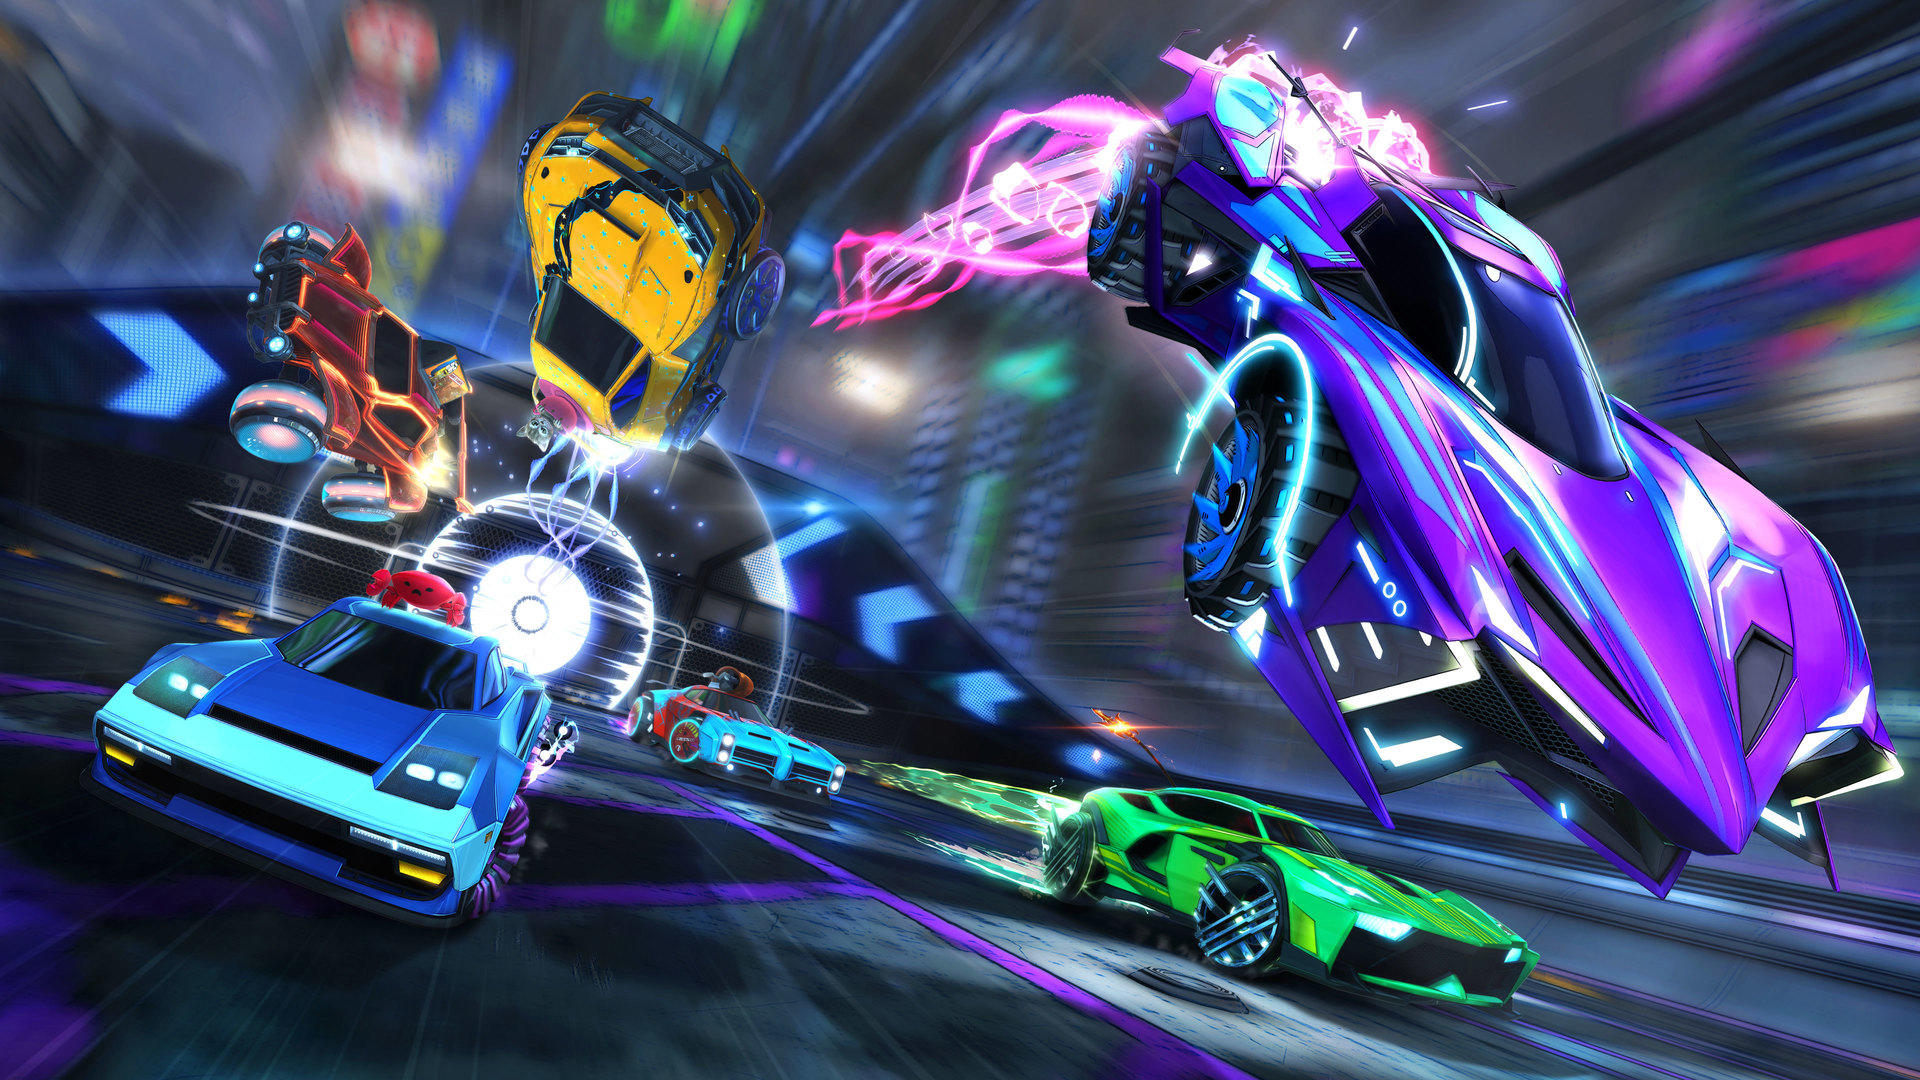 Rocket League World Championship leads Twitch over the weekend